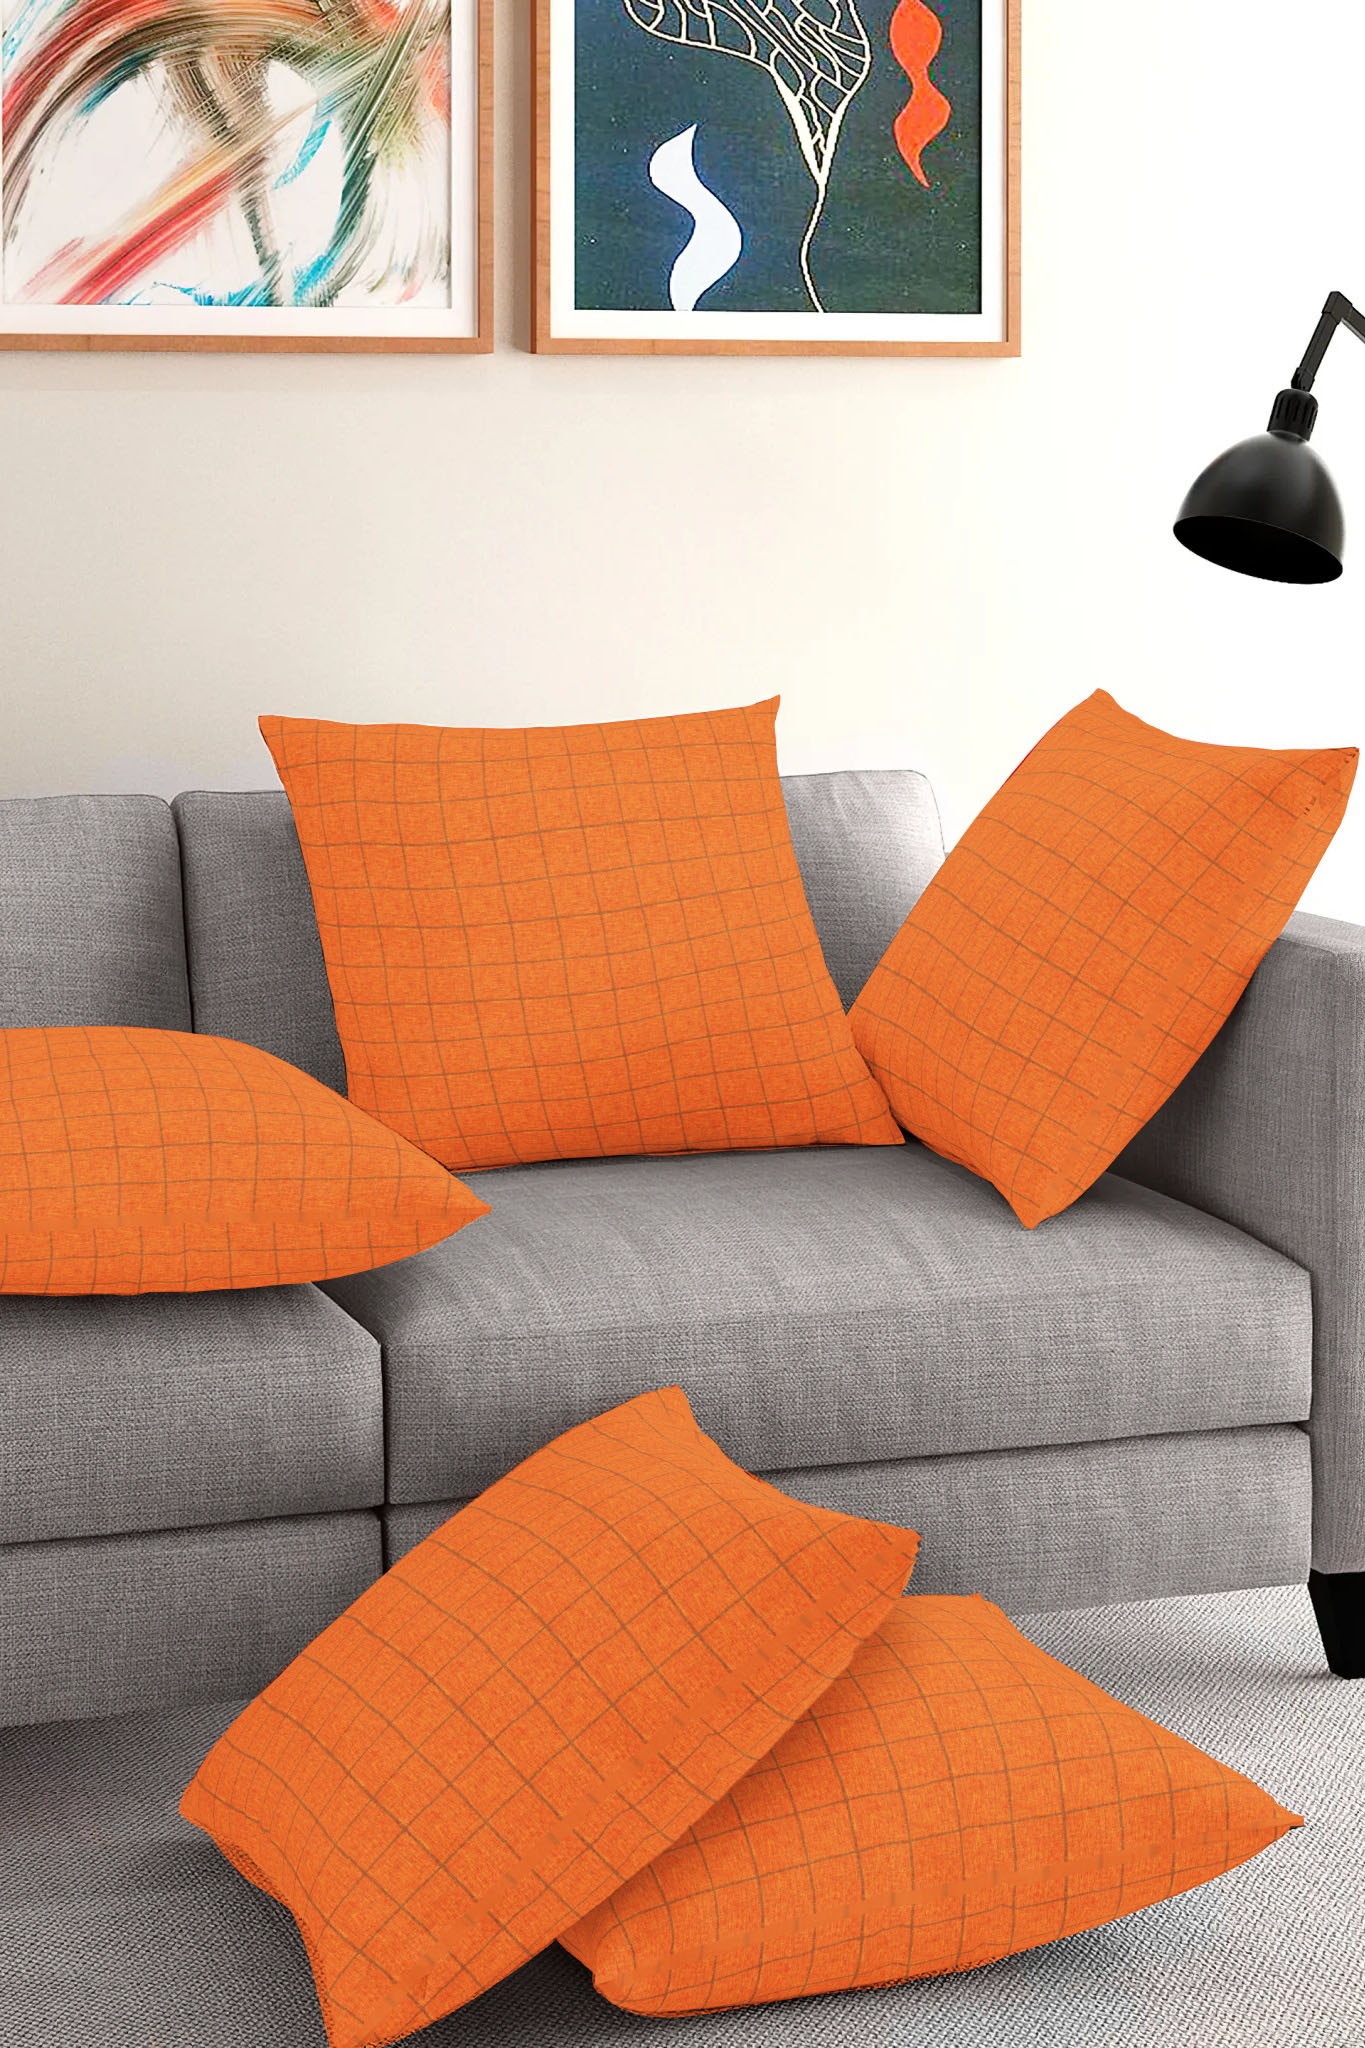 Set of 5-Orange Black Cotton Cushion Cover-35404-16x16 Inches